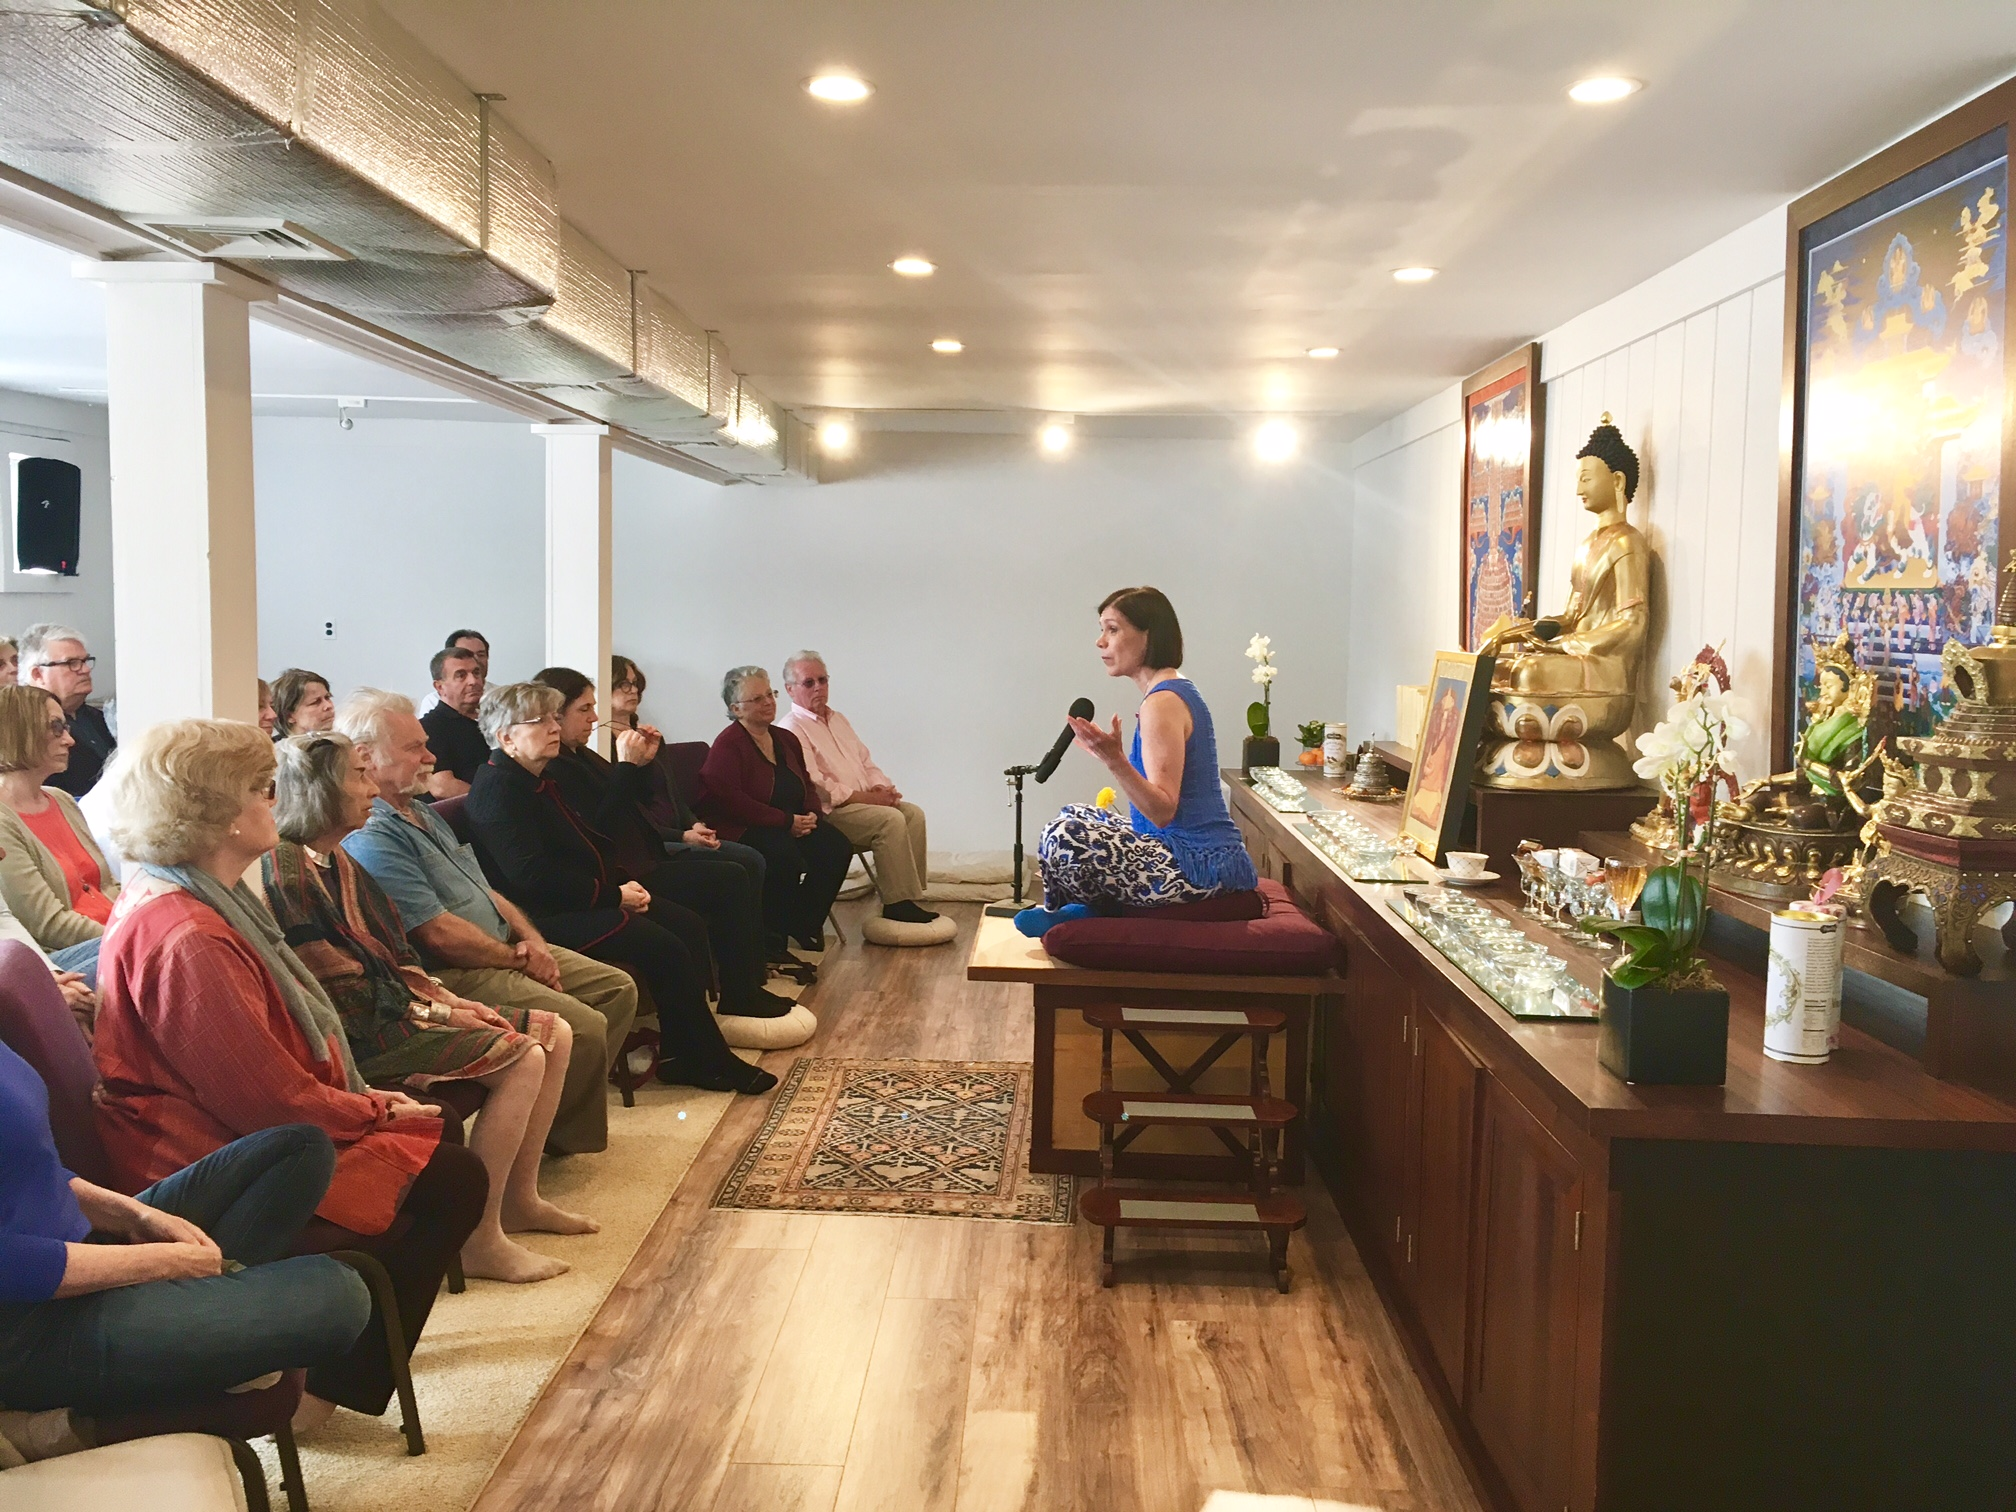 There are many drop-in weekly classes on Buddhism and meditation offered